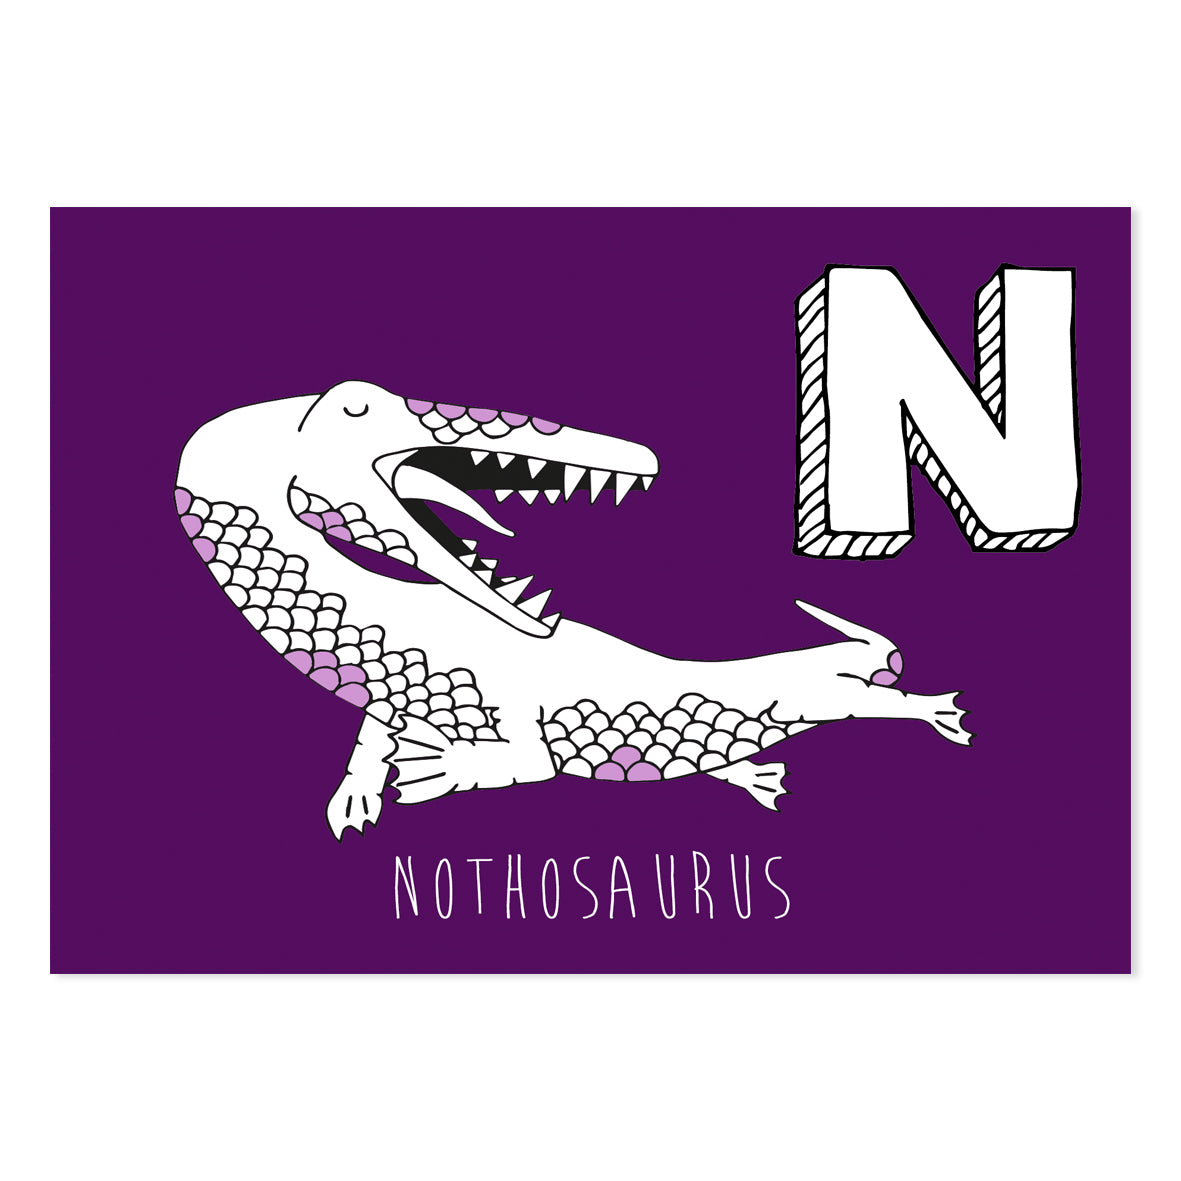 Purple postcard featuring the letter N for nothosaurus